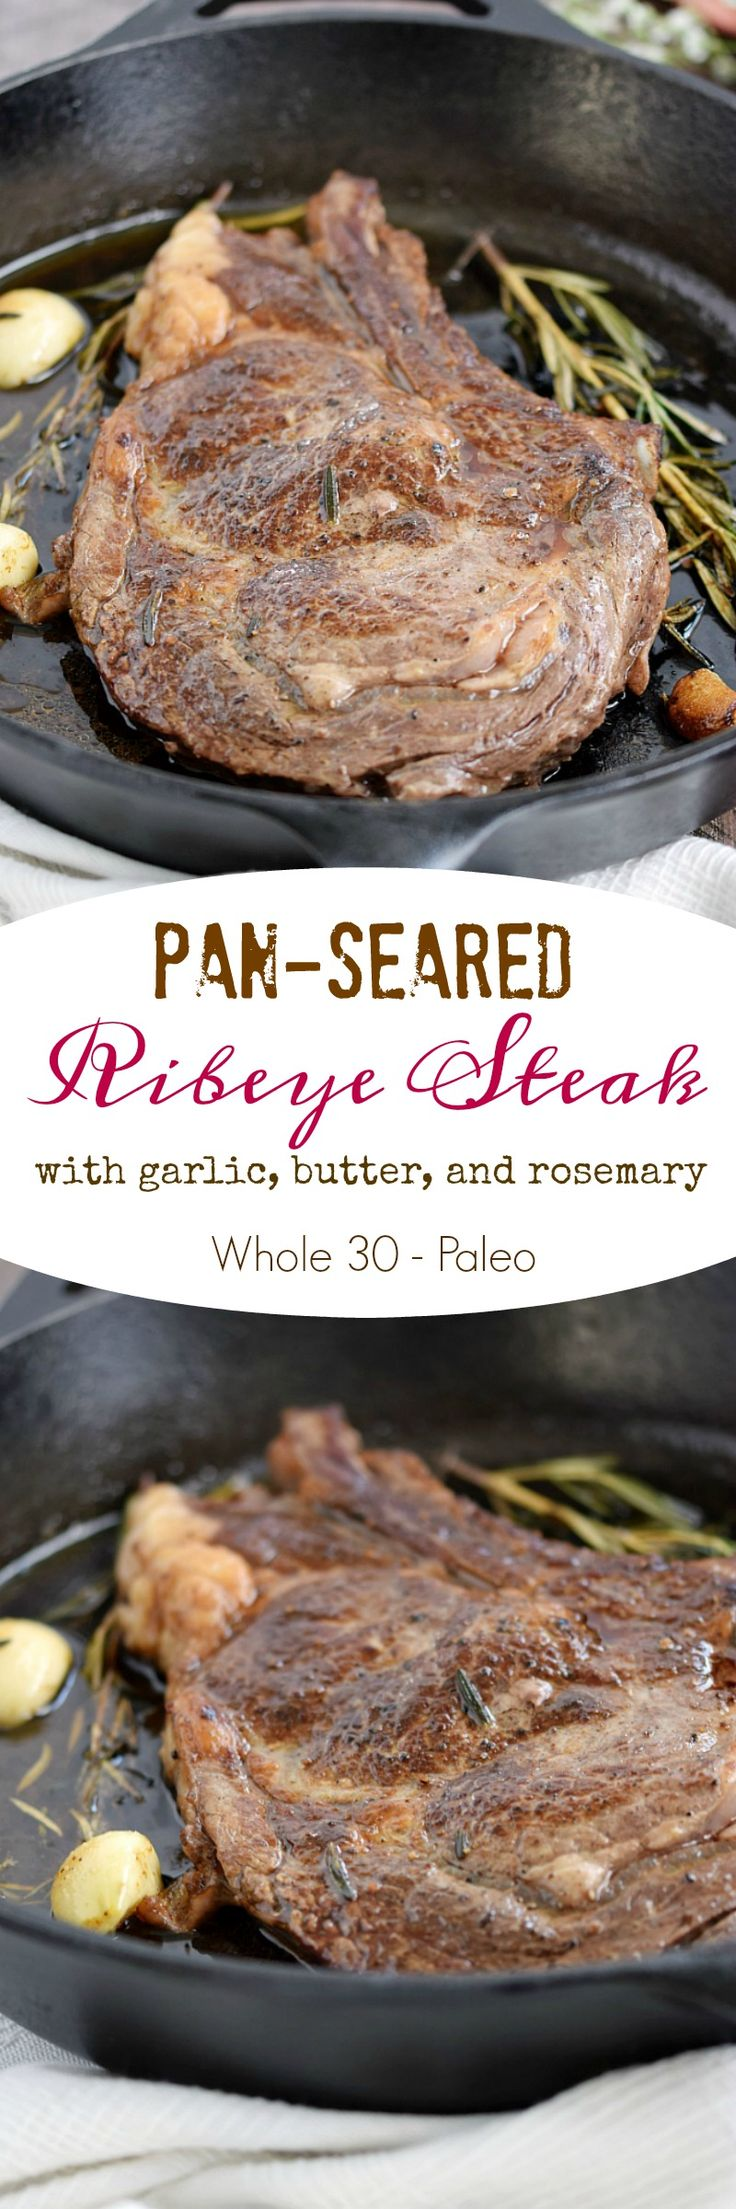 This Pan-Seared Ribeye Steak is basted with butter, garlic, and rosemary for an easy and insanely delicious Dinner for Two | cookingwithcurls.com